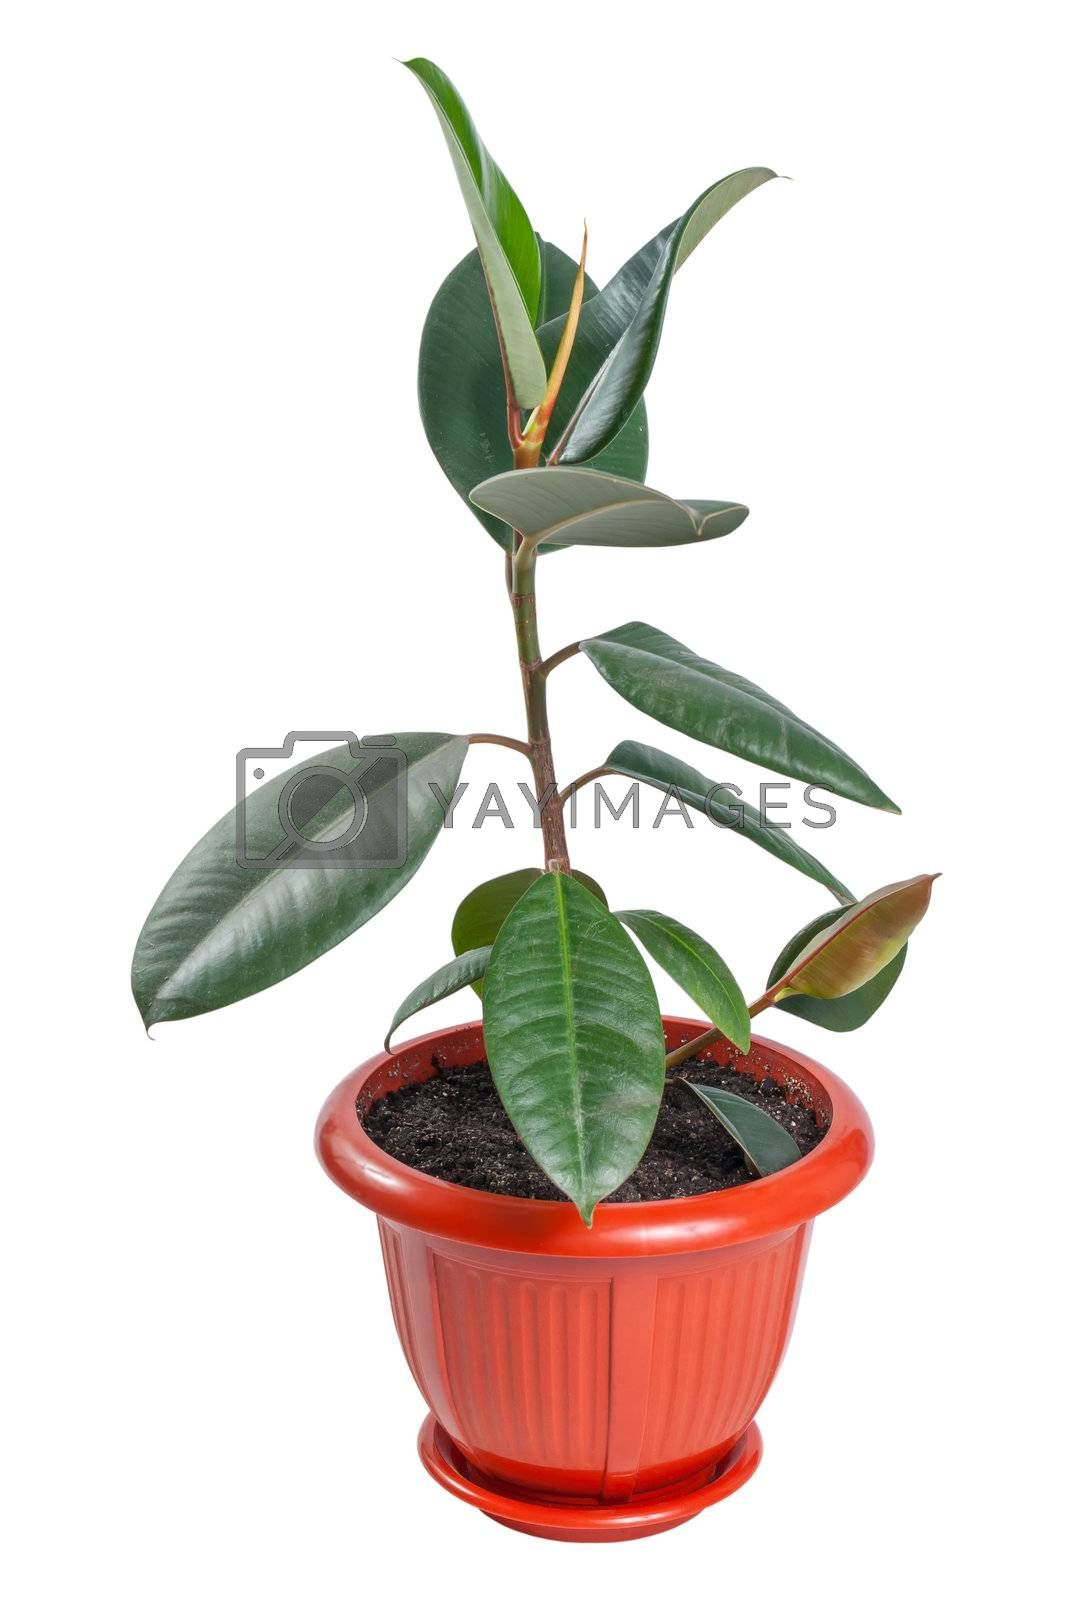 Ficus (Rubber Plant) in pot isolated on white background